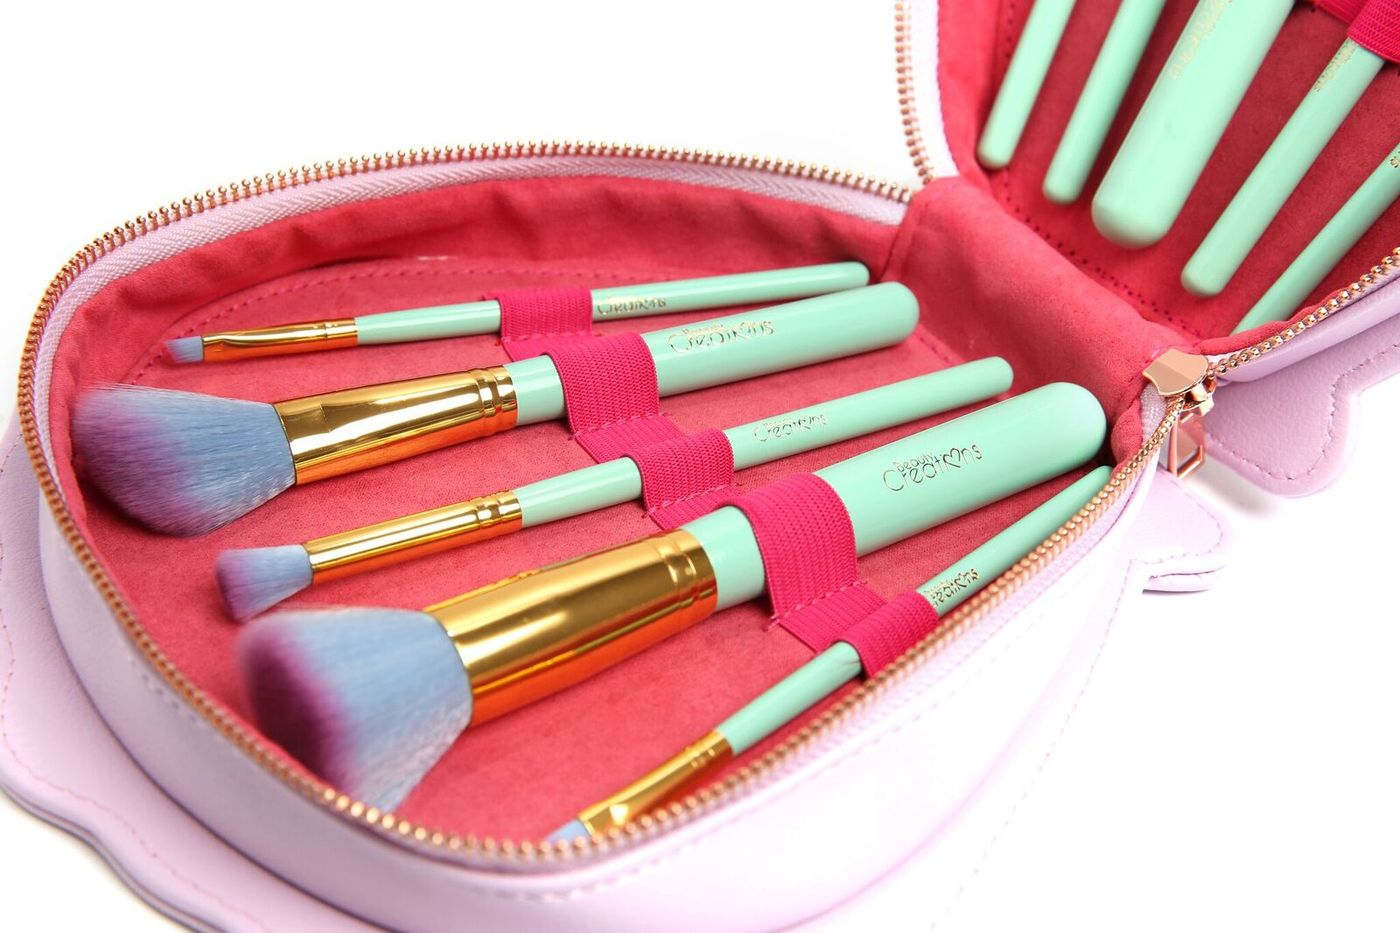 SEA SHELL MERMAID 10 Piece Brush Set